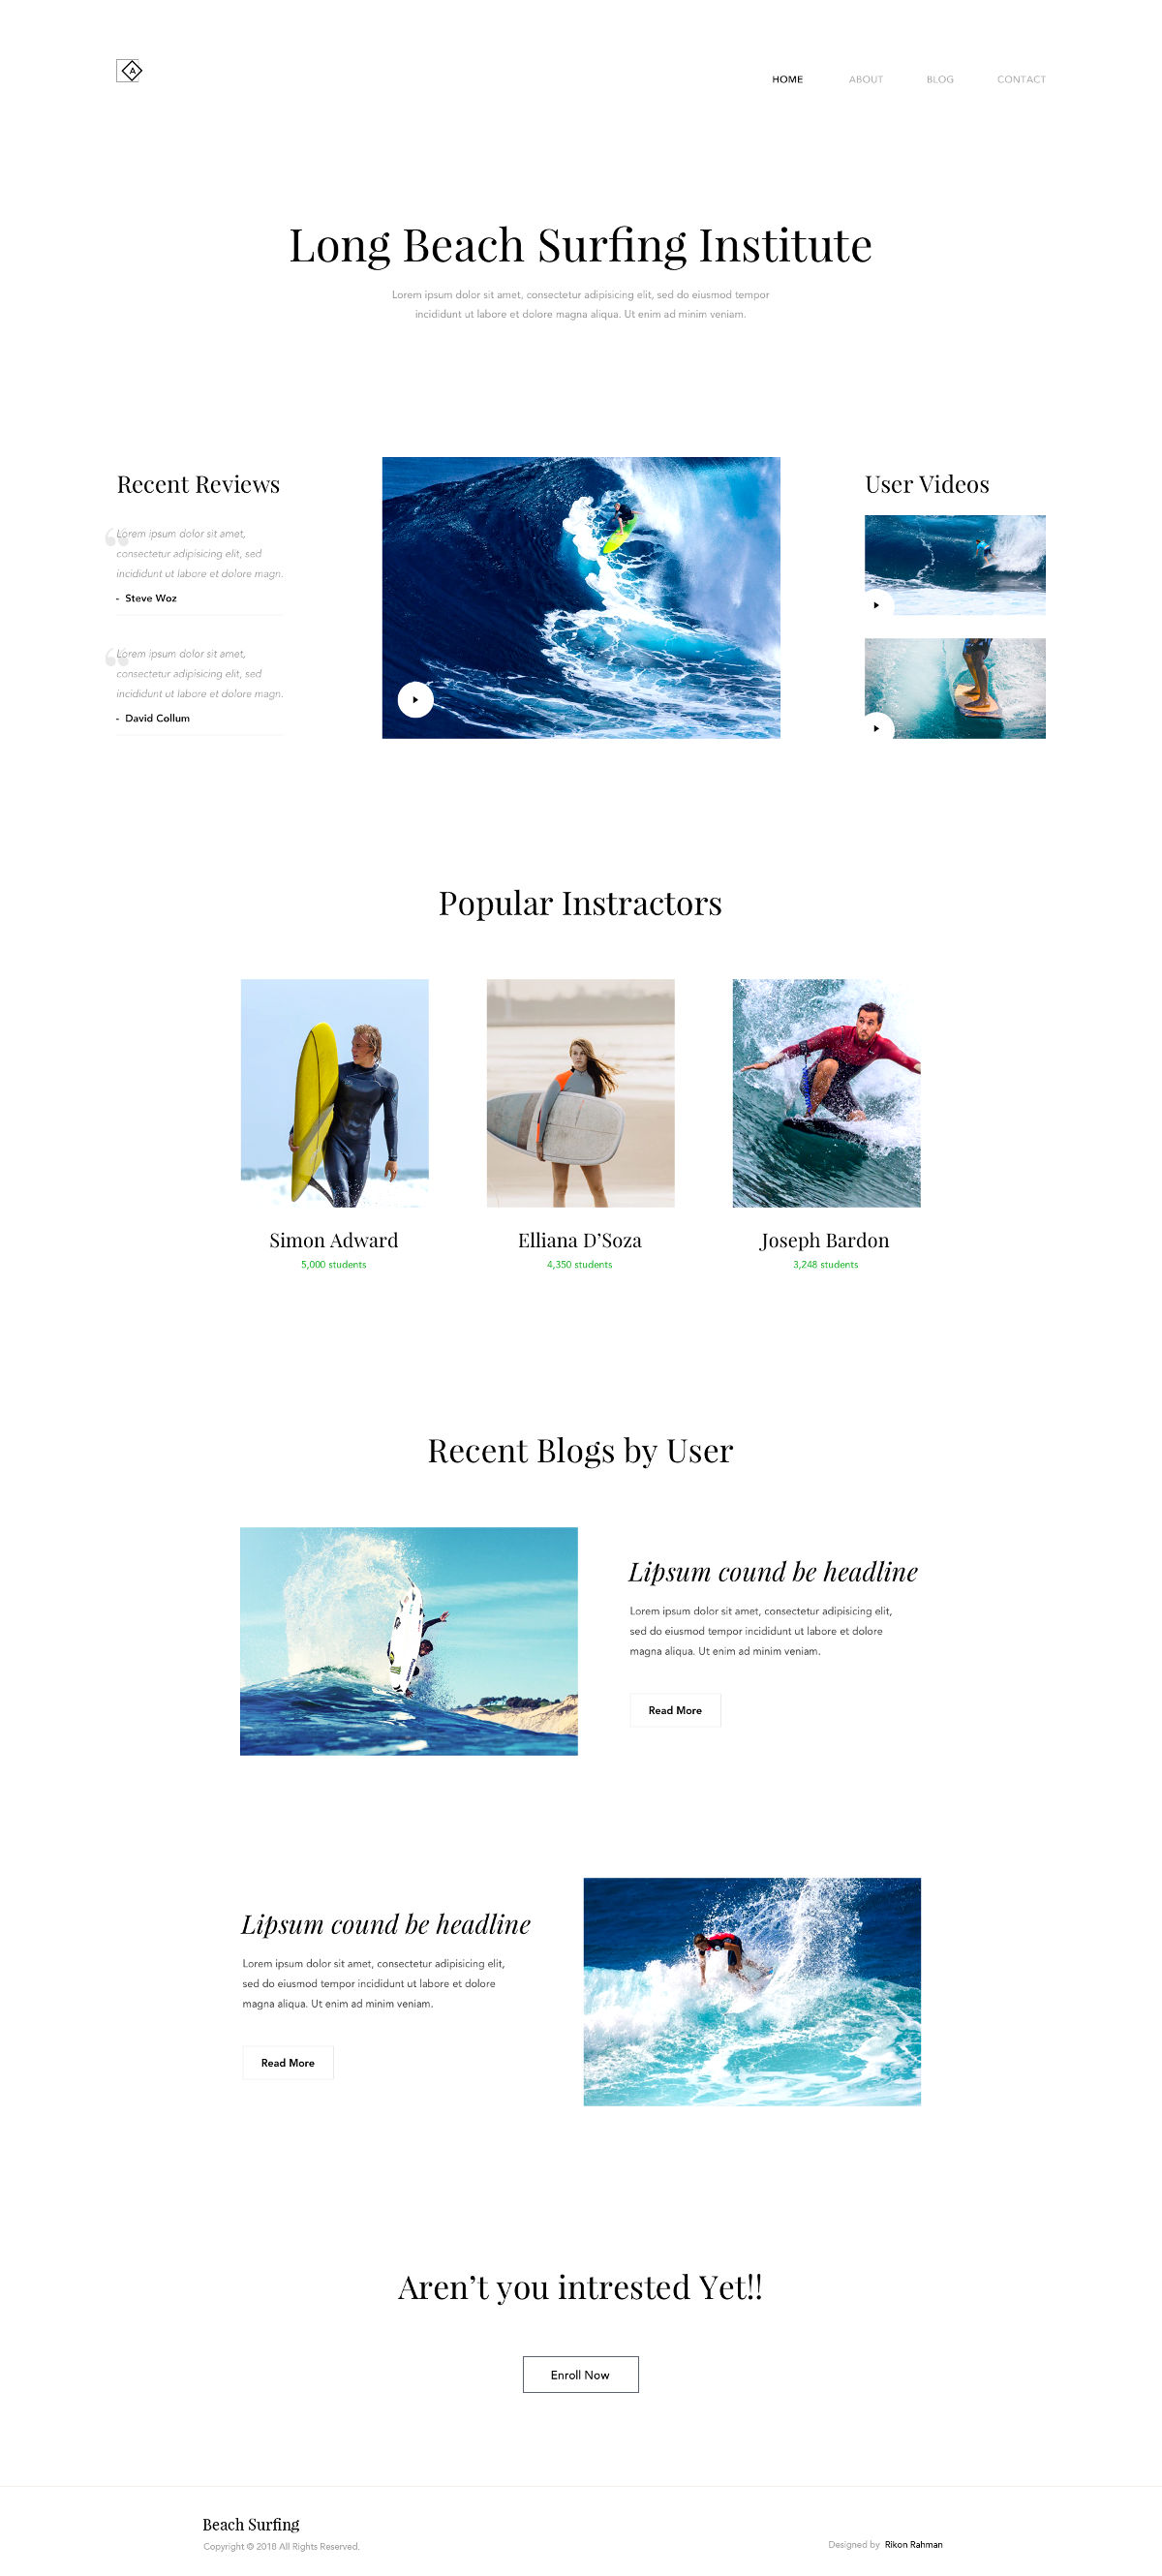 Free Surfing Institute Landing Page Template